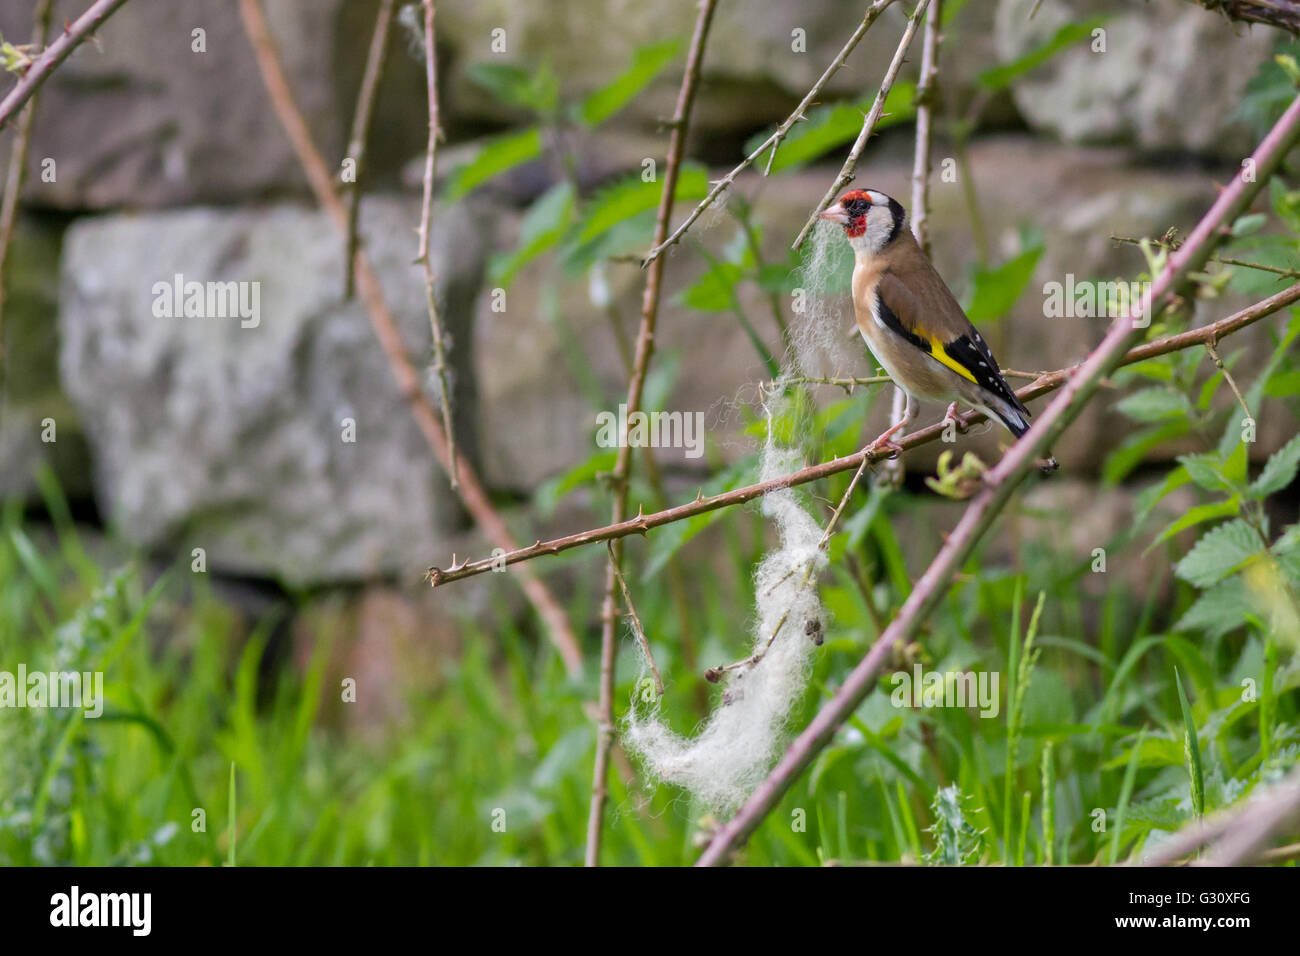 Goldfinch (Carduelis carduelis) gathering wool as nesting material - Stock Image